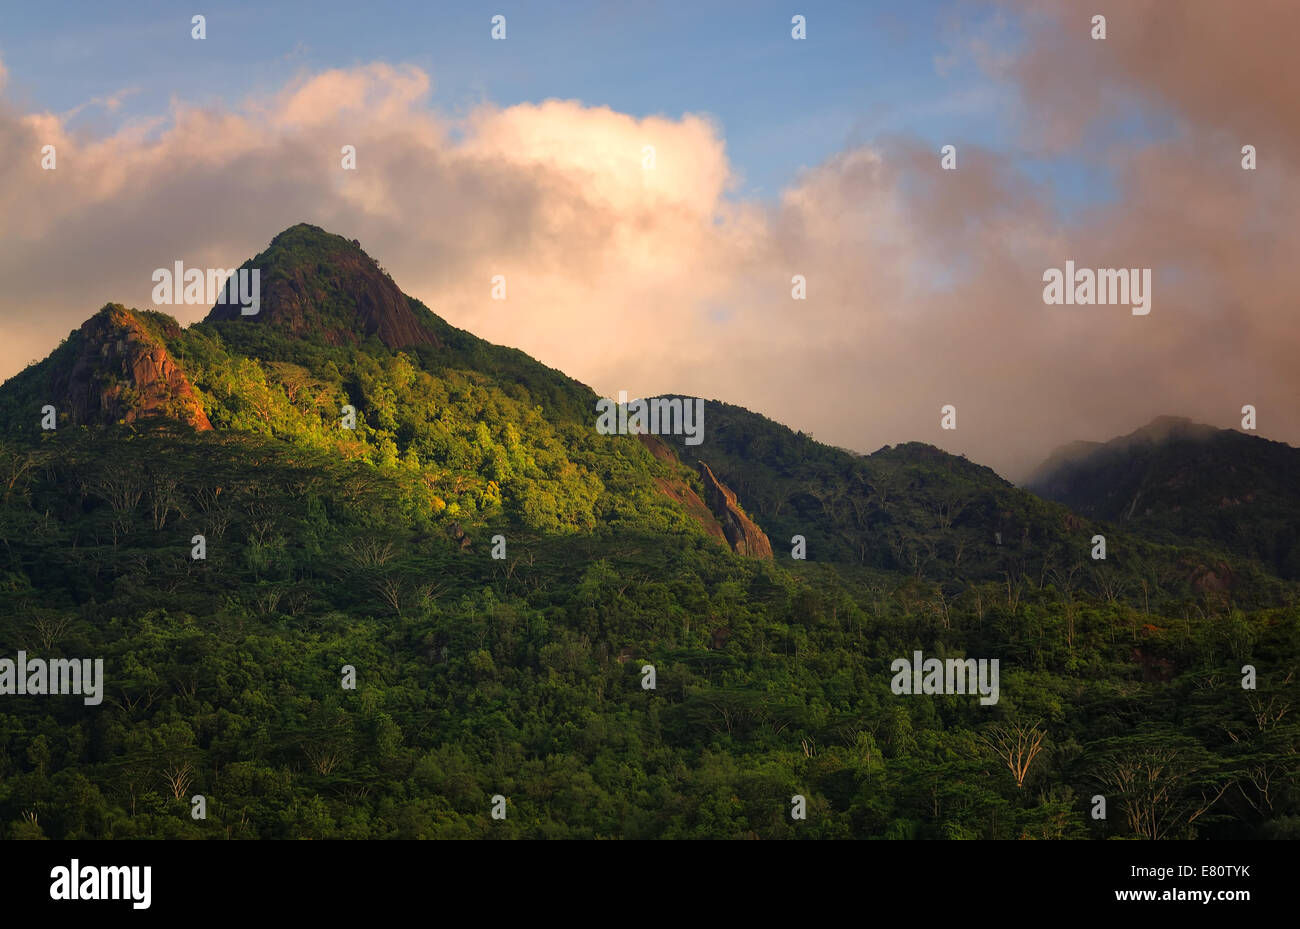 Sunset on the Mahe island, Seychelles - Stock Image